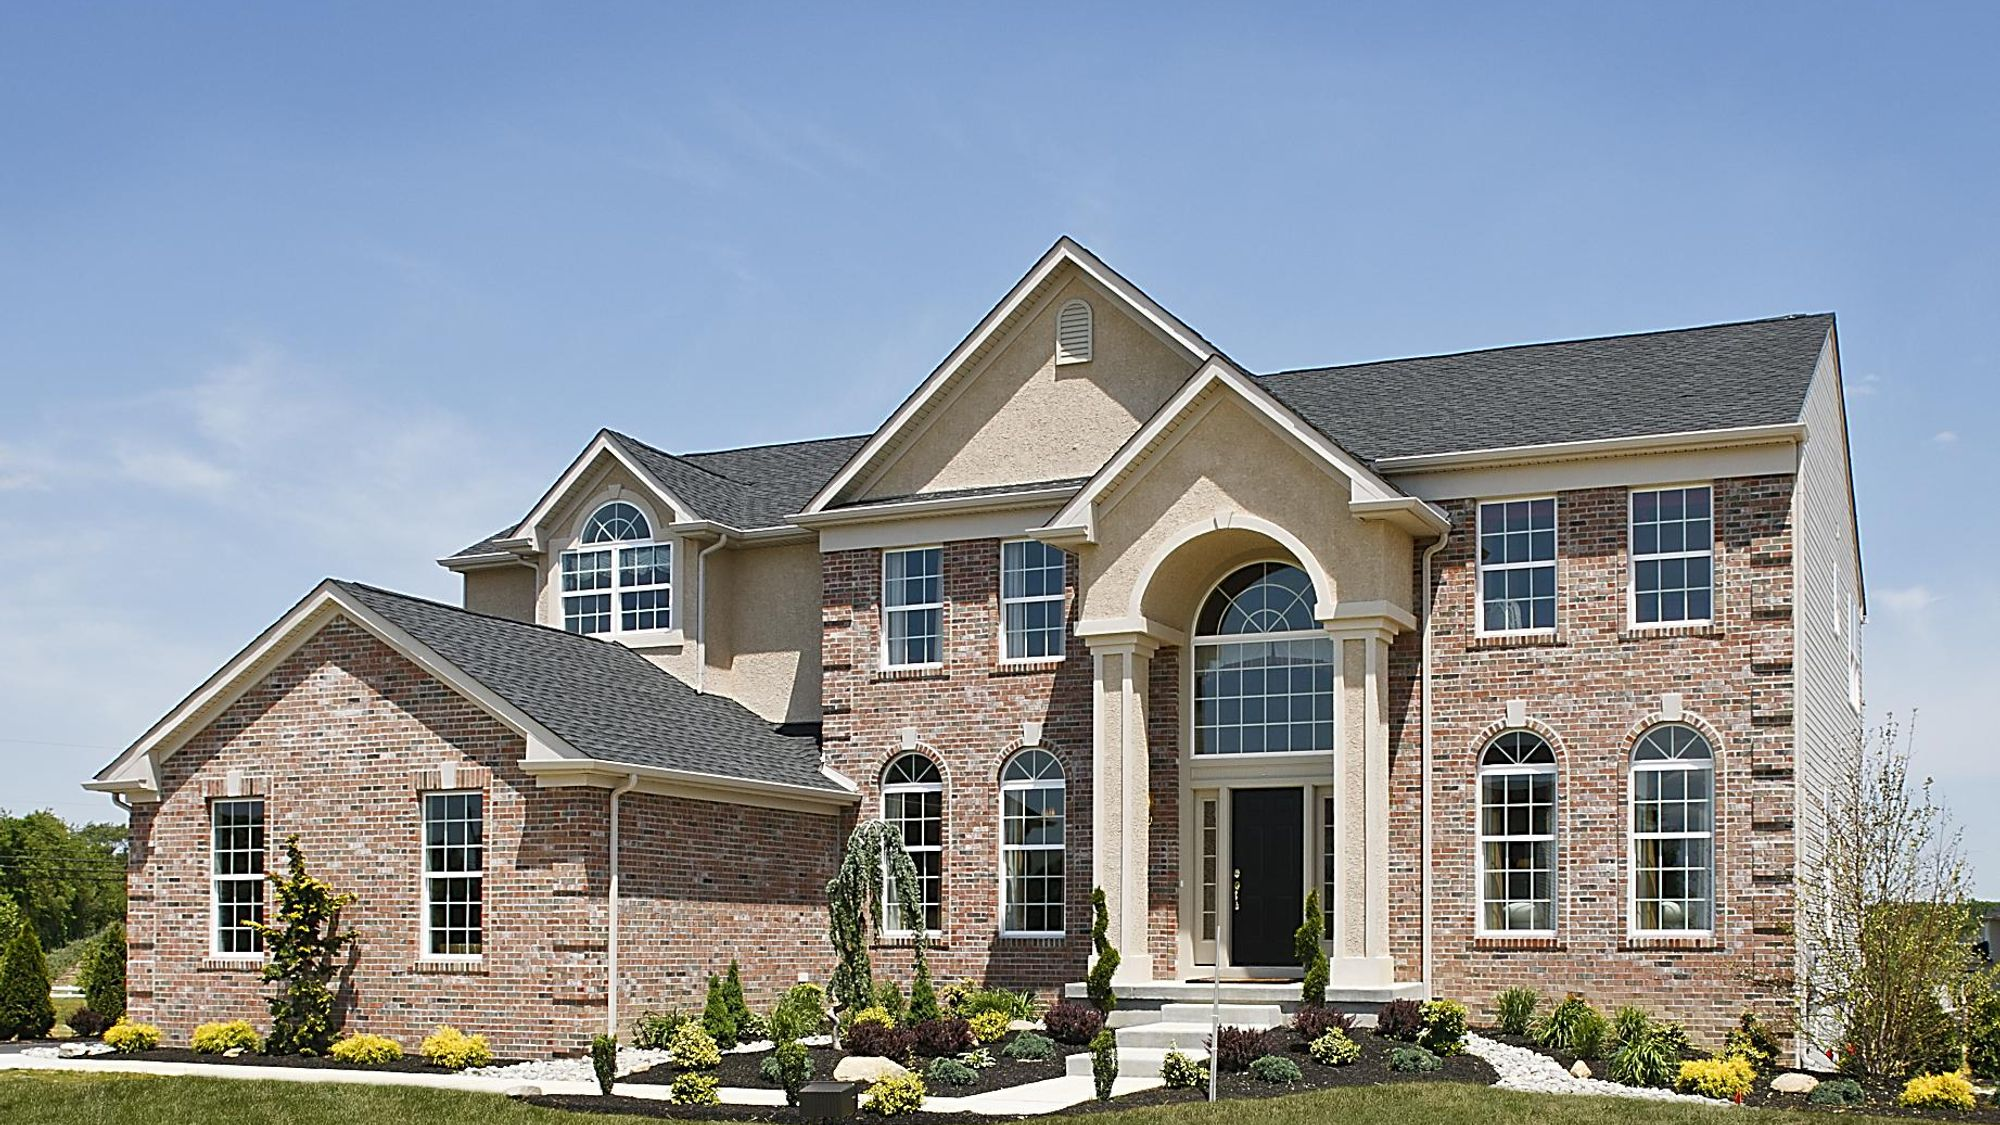 Oxford Traditional luxury new home in south Jersey with brick front, 2 story columns, peaked roof and palladian window over door, 2 car garage.